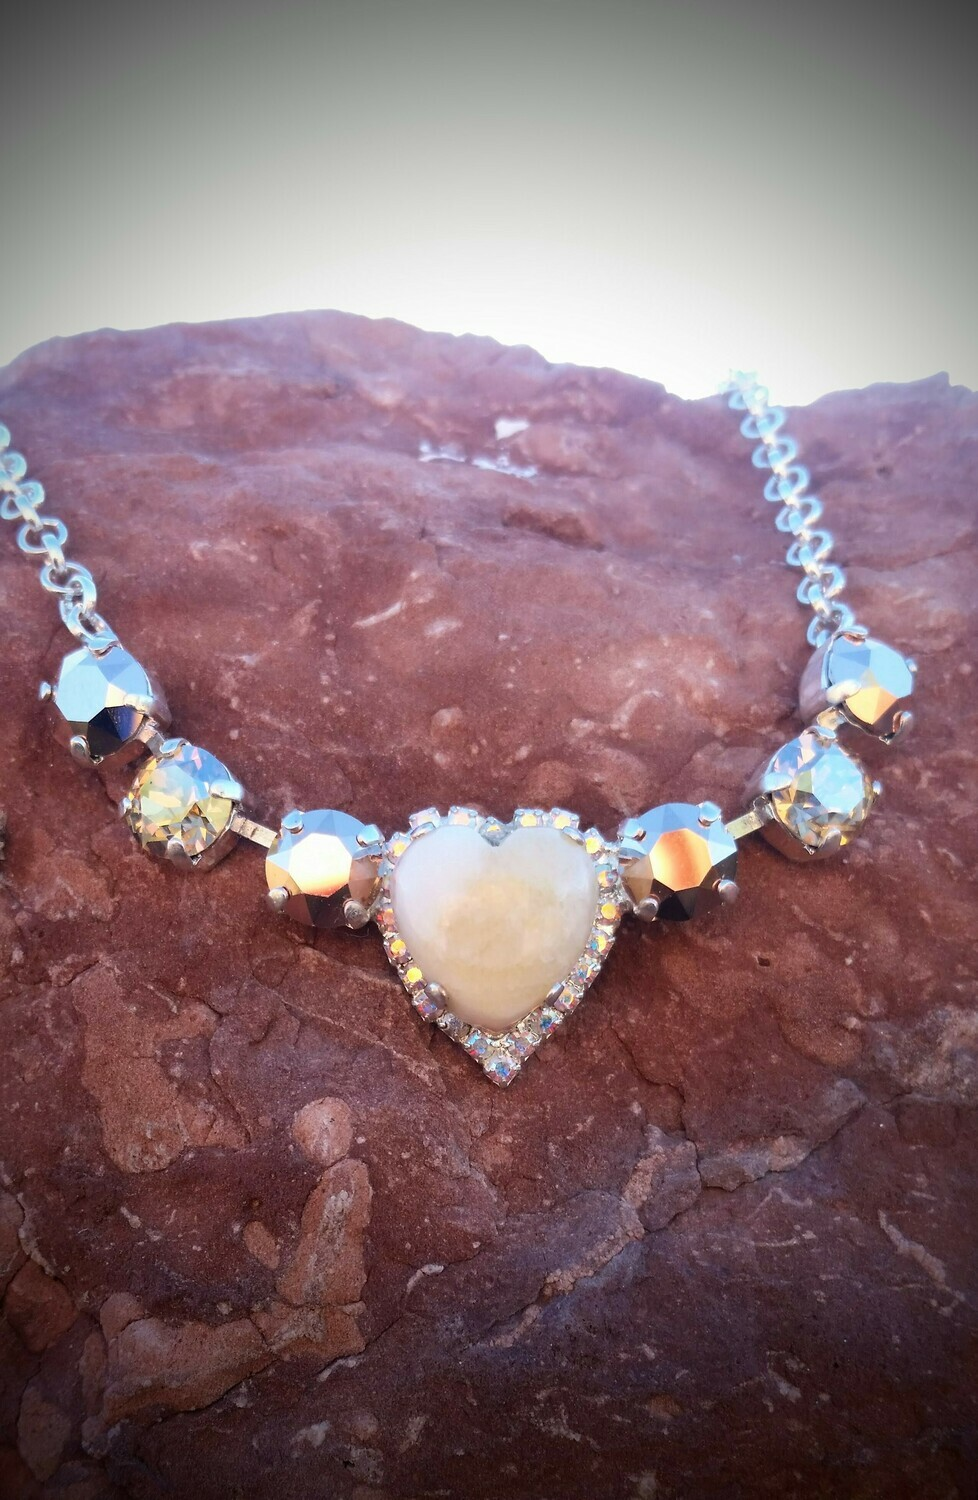 Sedona Gold Radiance Christos-Sophia Hearts of Mother Earth Healer  Priestess $244.00/$444.000 {Light Workers sale}